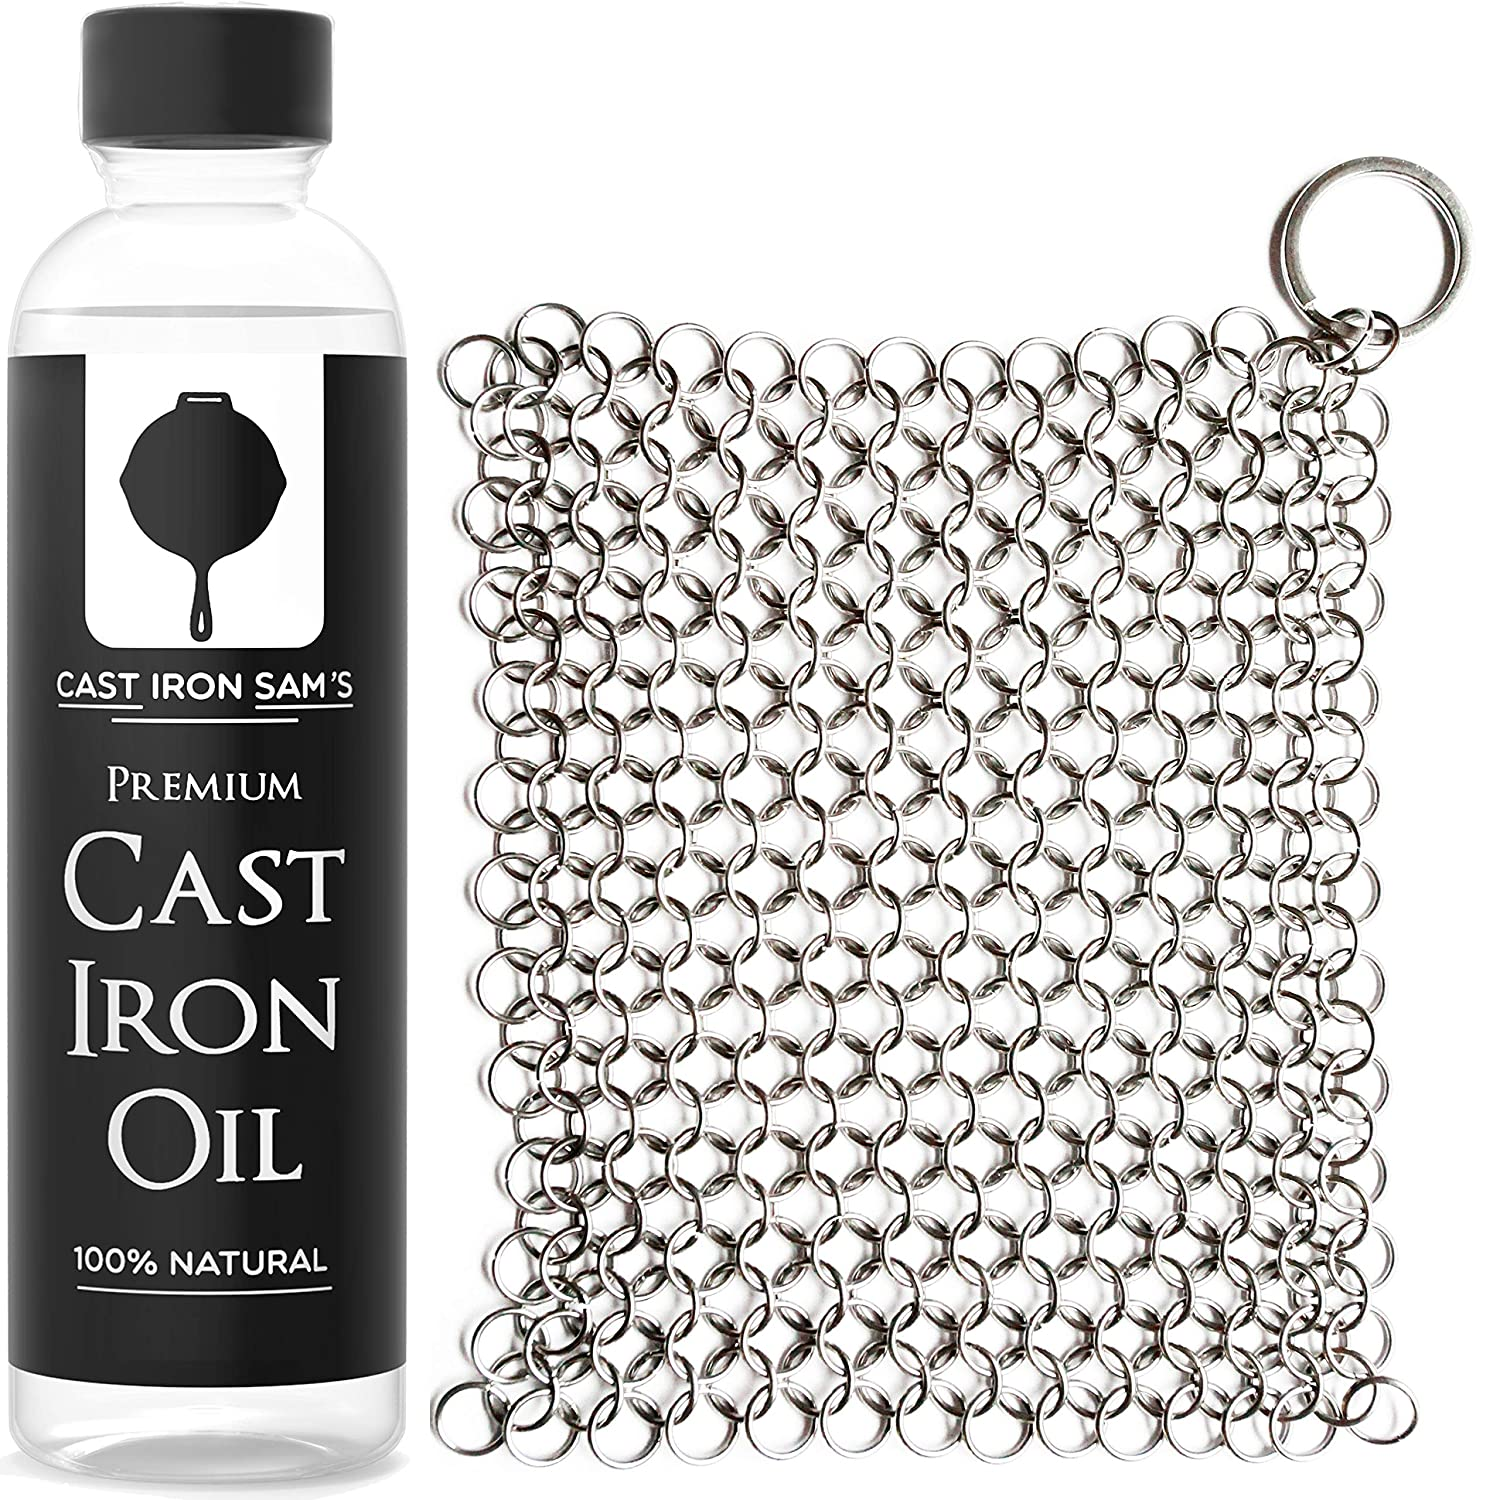 Stainless Steel Chainmail Cast Iron Scrubber and Seasoning Oil: Clean, Condition and Maintain Your Skillet, Dutch Oven, Grill Pan and all Castiron Cookware